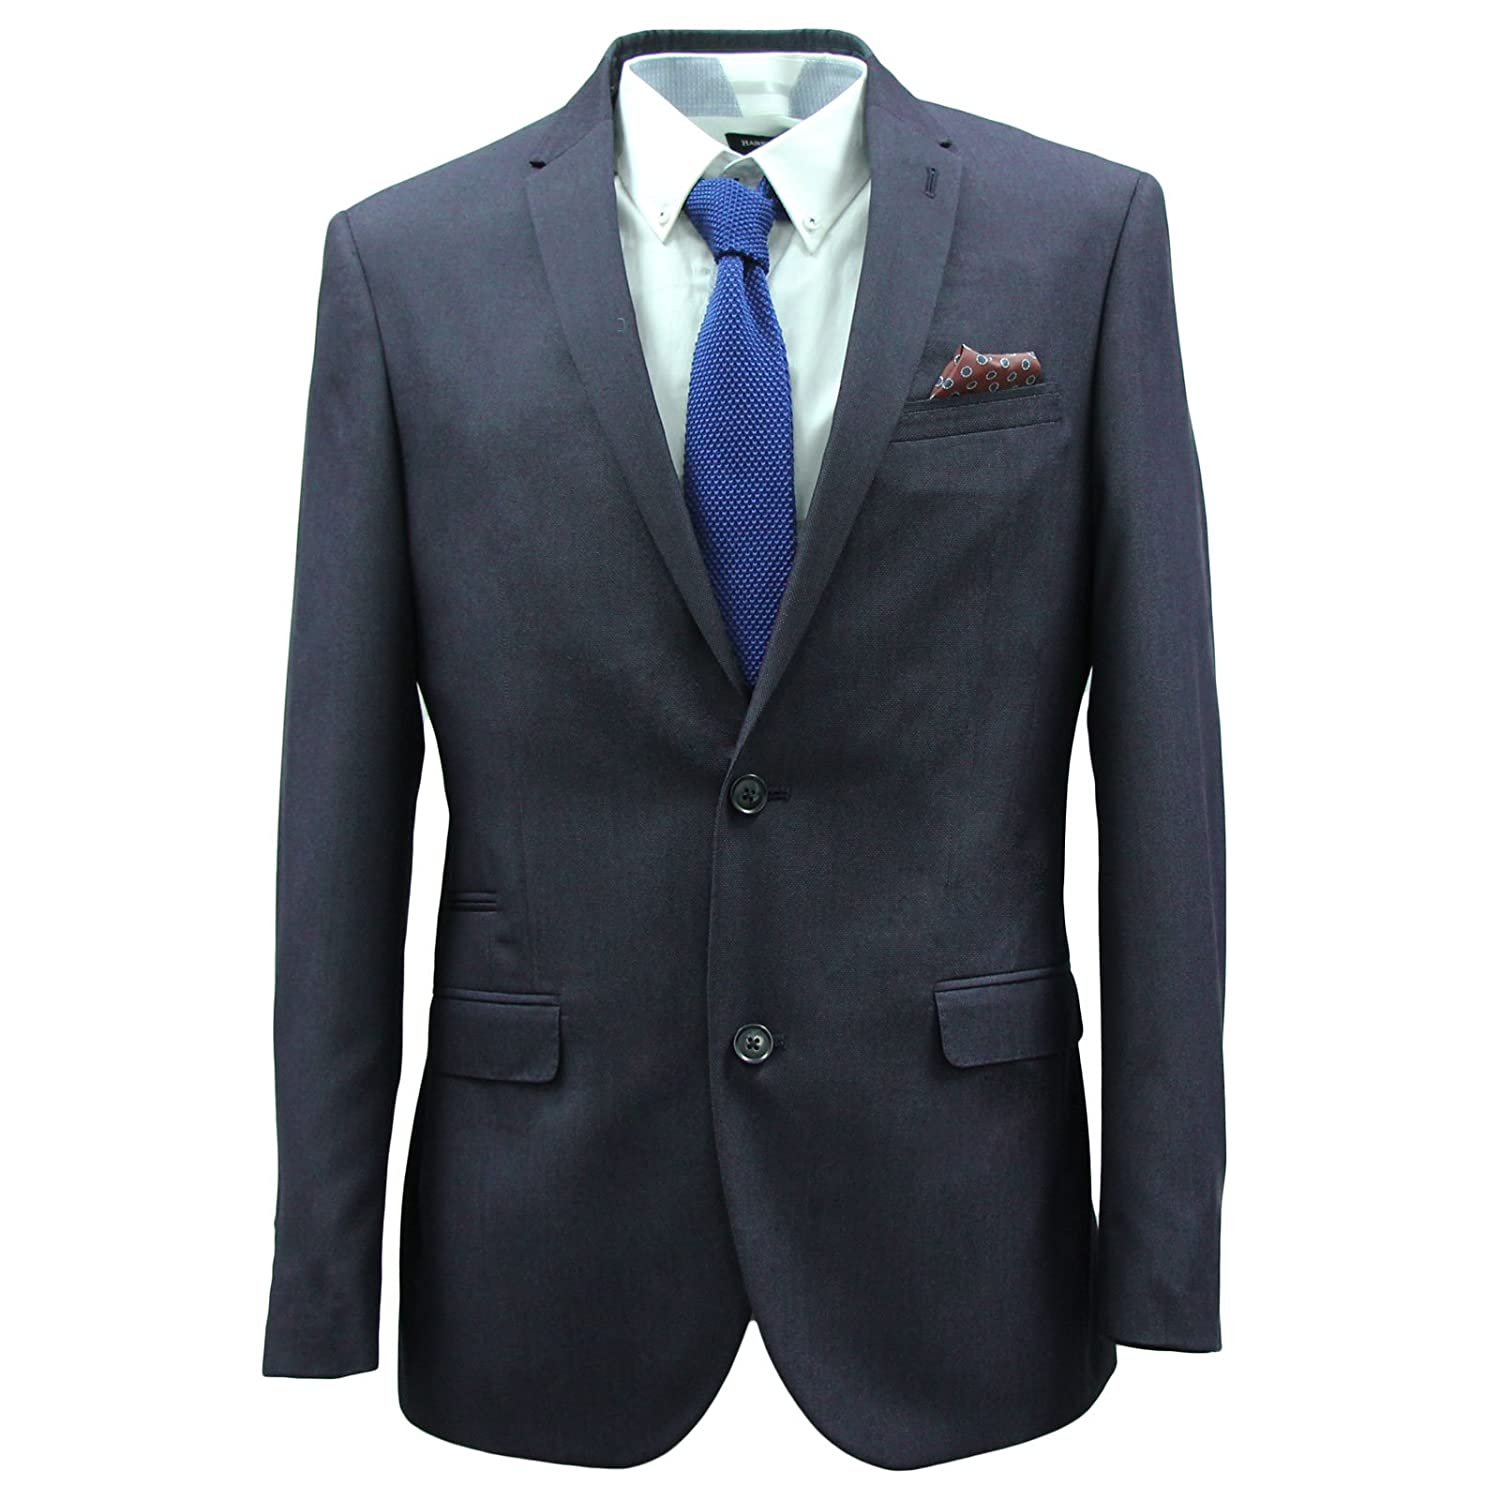 HARRY BROWN Men's 2 Piece 2 Button Tailored Fit Suit hot sale